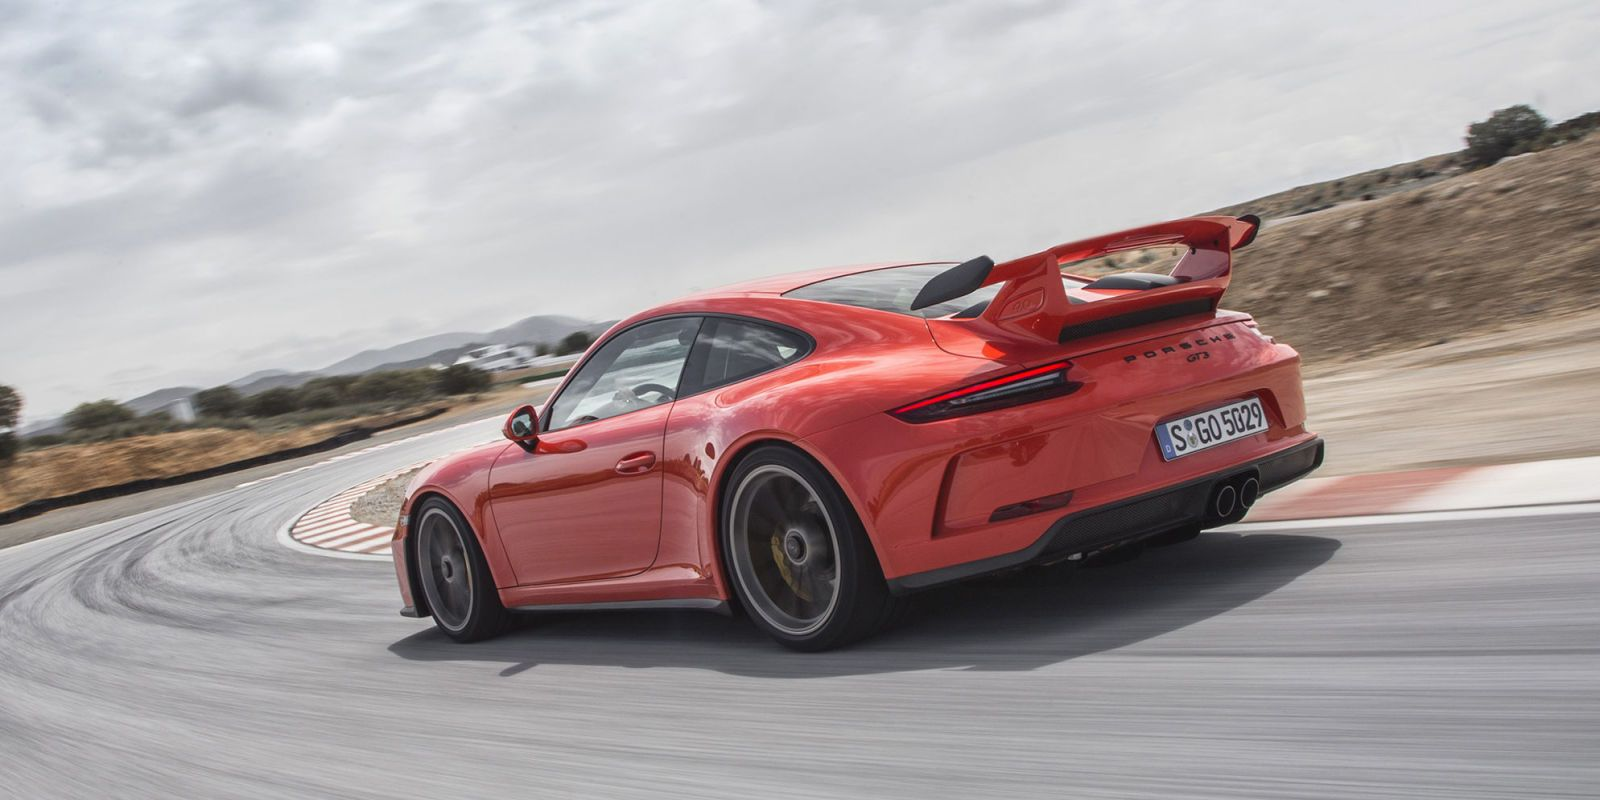 New 911 GT3 – Porsche 9912 GT3 Manual First Drive